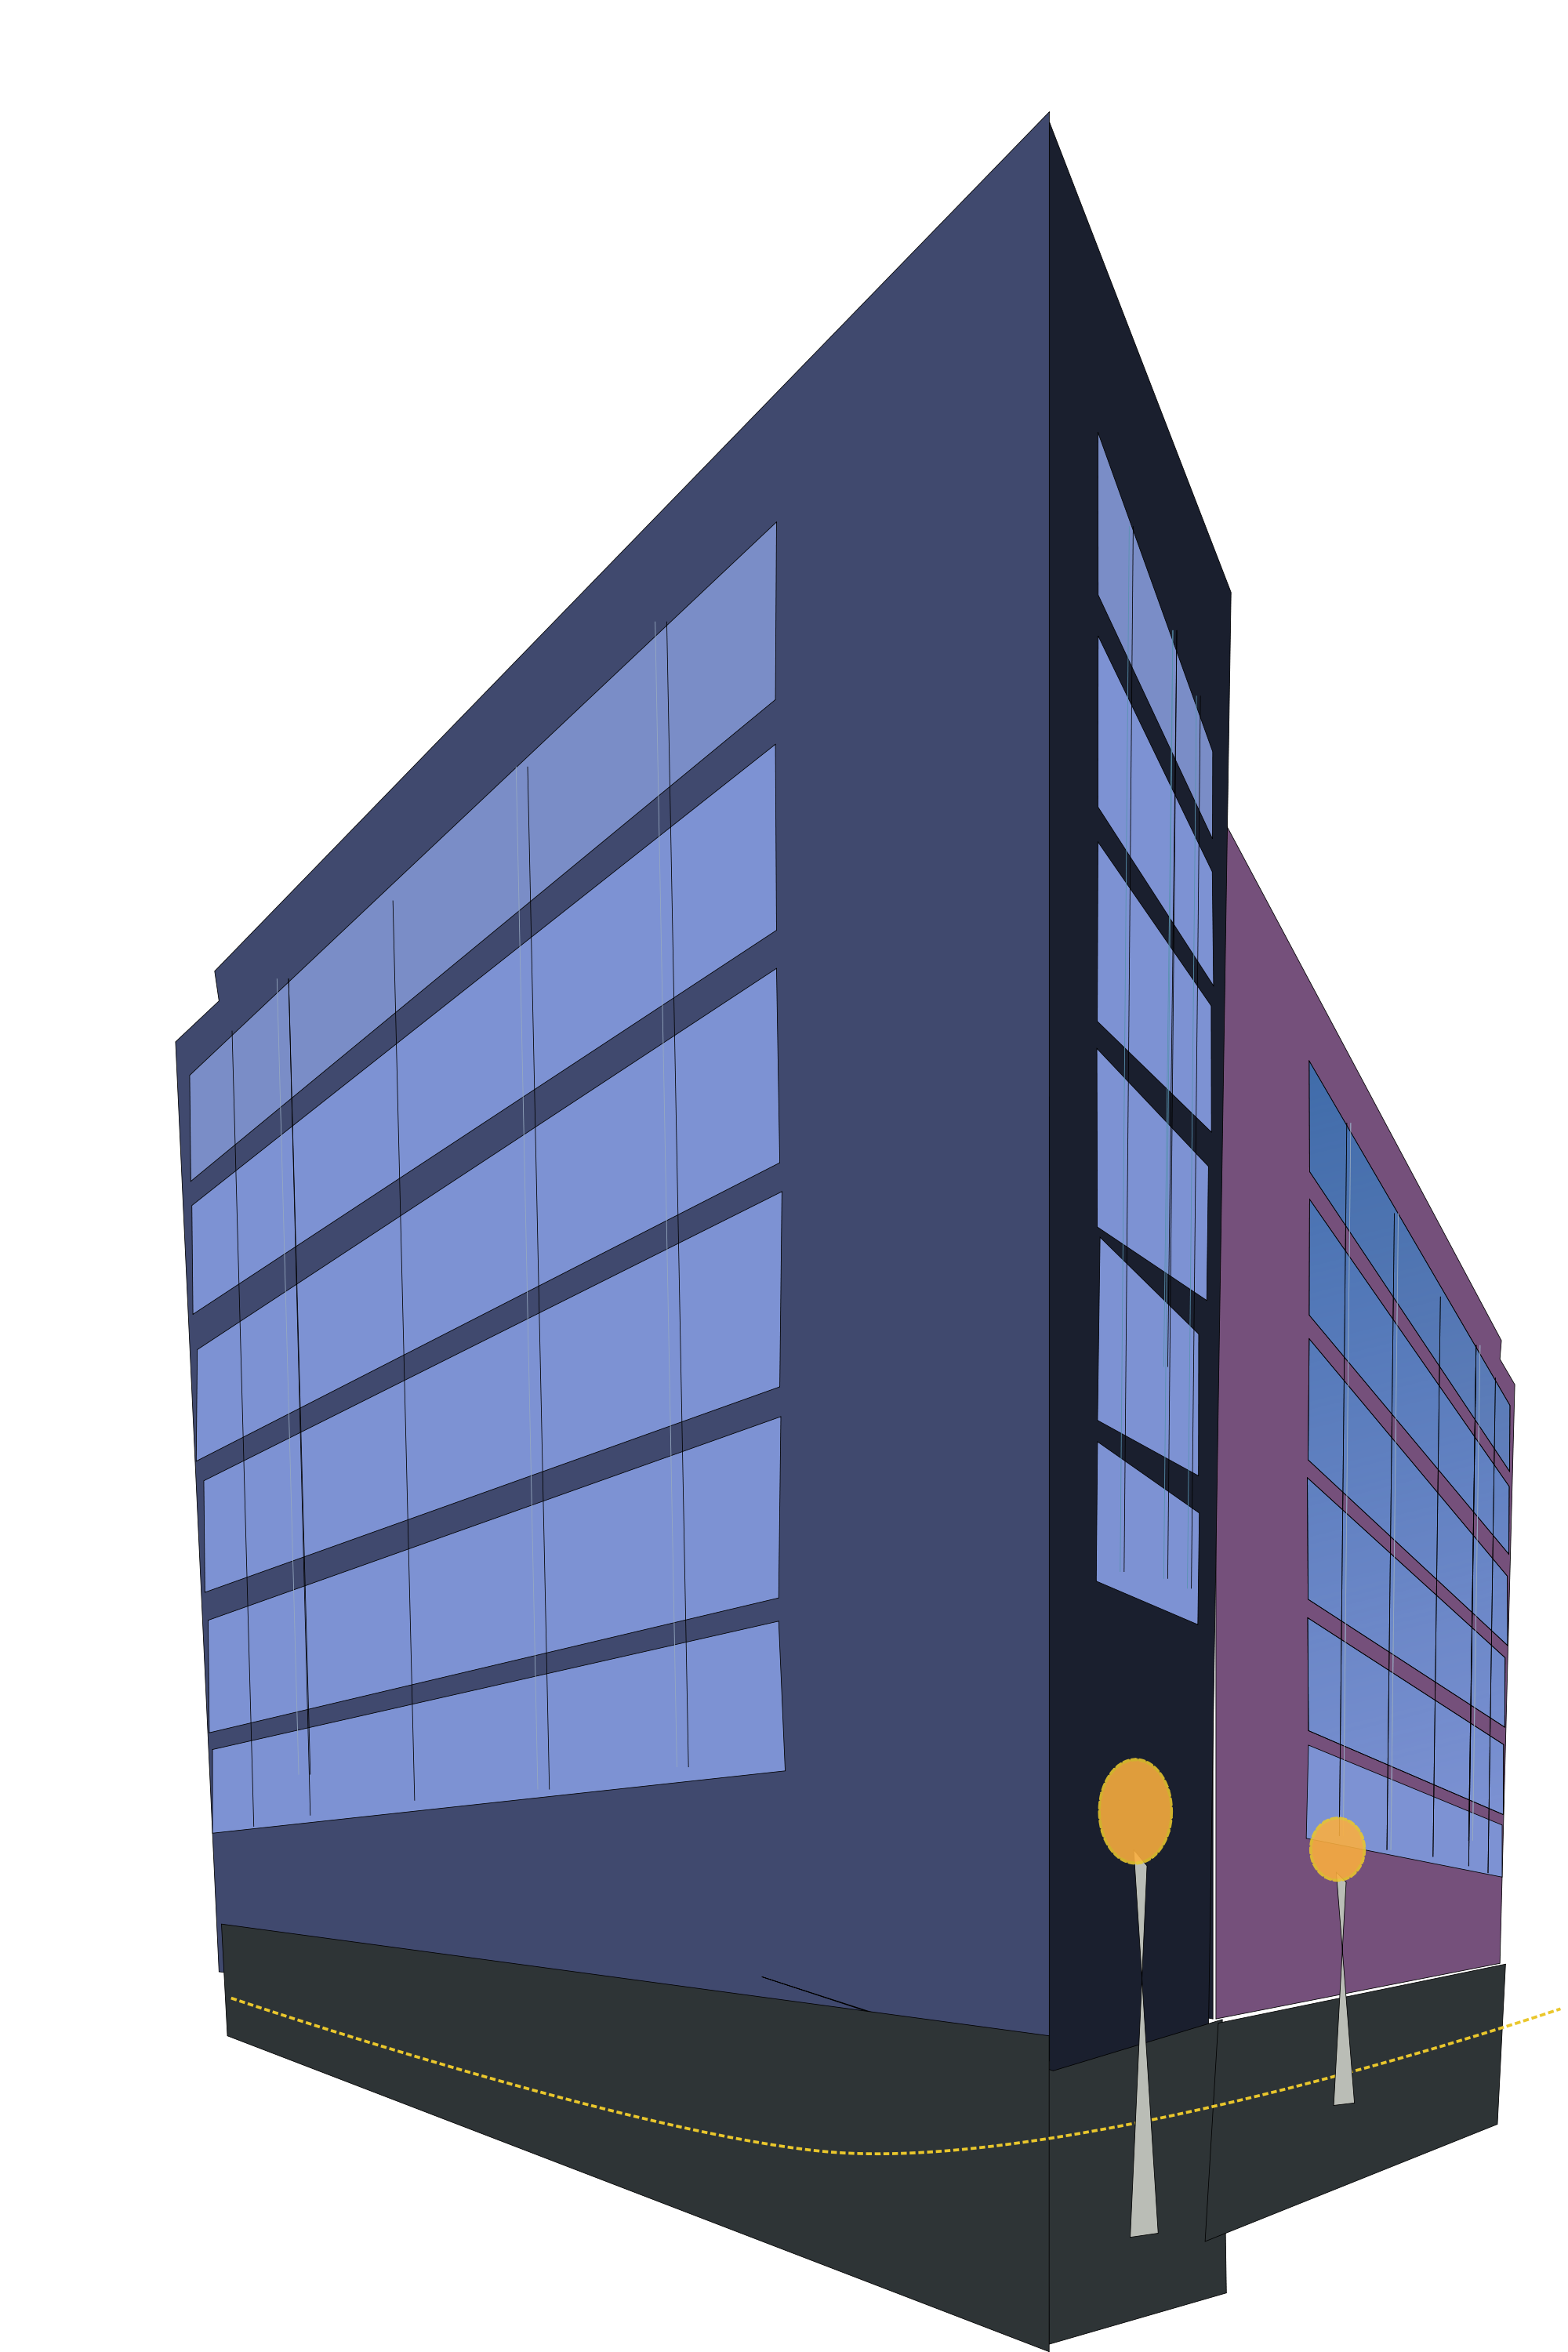 File commercial svg wikimedia. Building clipart corporate building